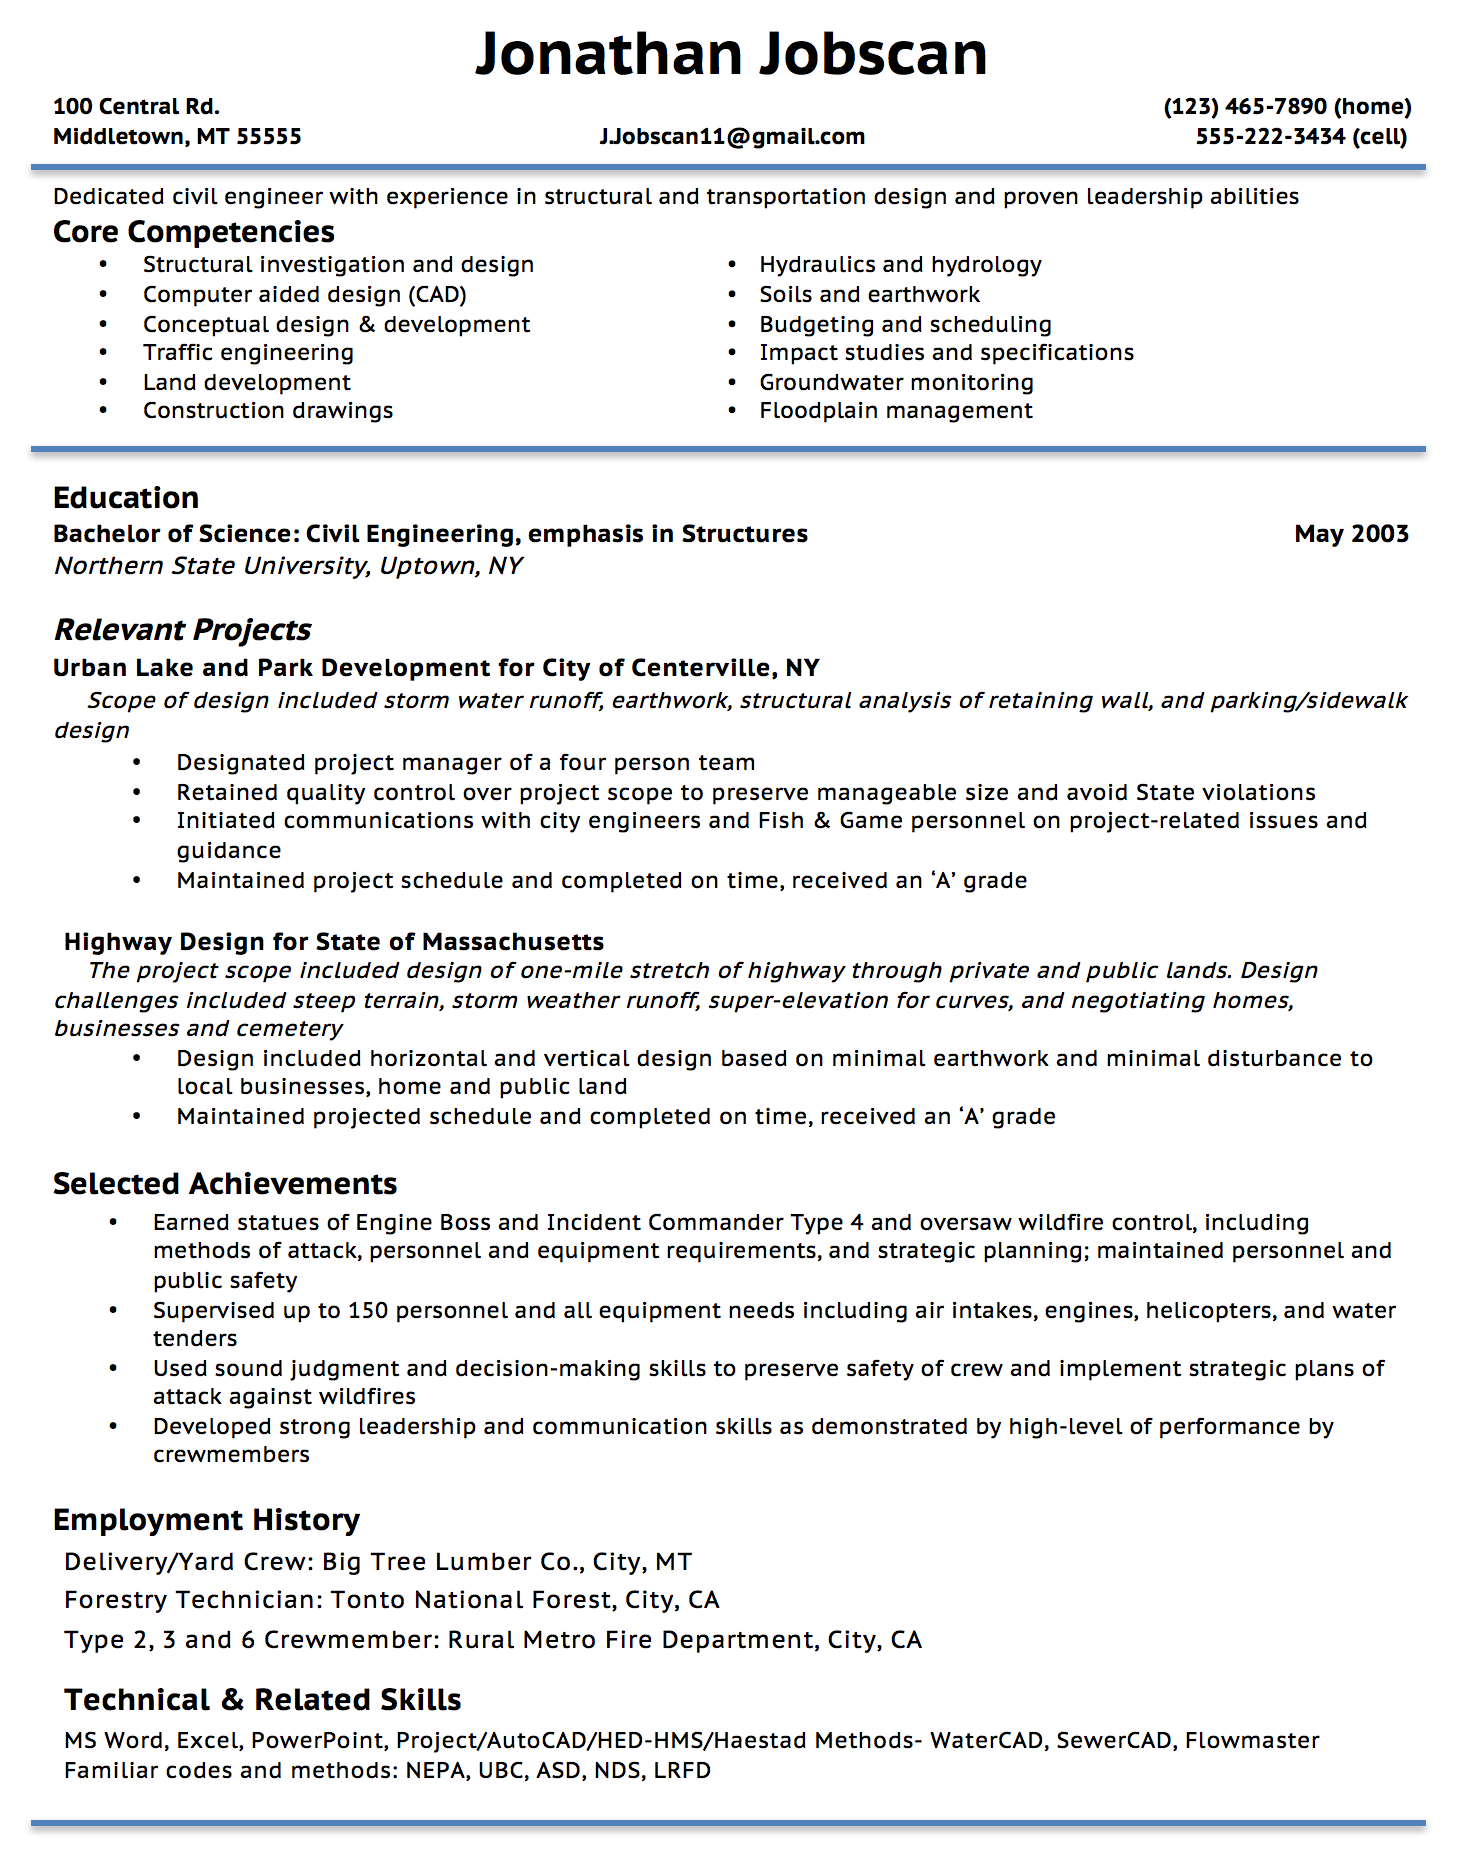 Opposenewapstandardsus  Remarkable Resume Writing Guide  Jobscan With Lovely Example Of A Functional Resume Format With Breathtaking Resume Tips Also Examples Of Resumes In Addition Make A Resume And Cv Vs Resume As Well As Skills For Resume Additionally Resume Objective From Jobscanco With Opposenewapstandardsus  Lovely Resume Writing Guide  Jobscan With Breathtaking Example Of A Functional Resume Format And Remarkable Resume Tips Also Examples Of Resumes In Addition Make A Resume From Jobscanco